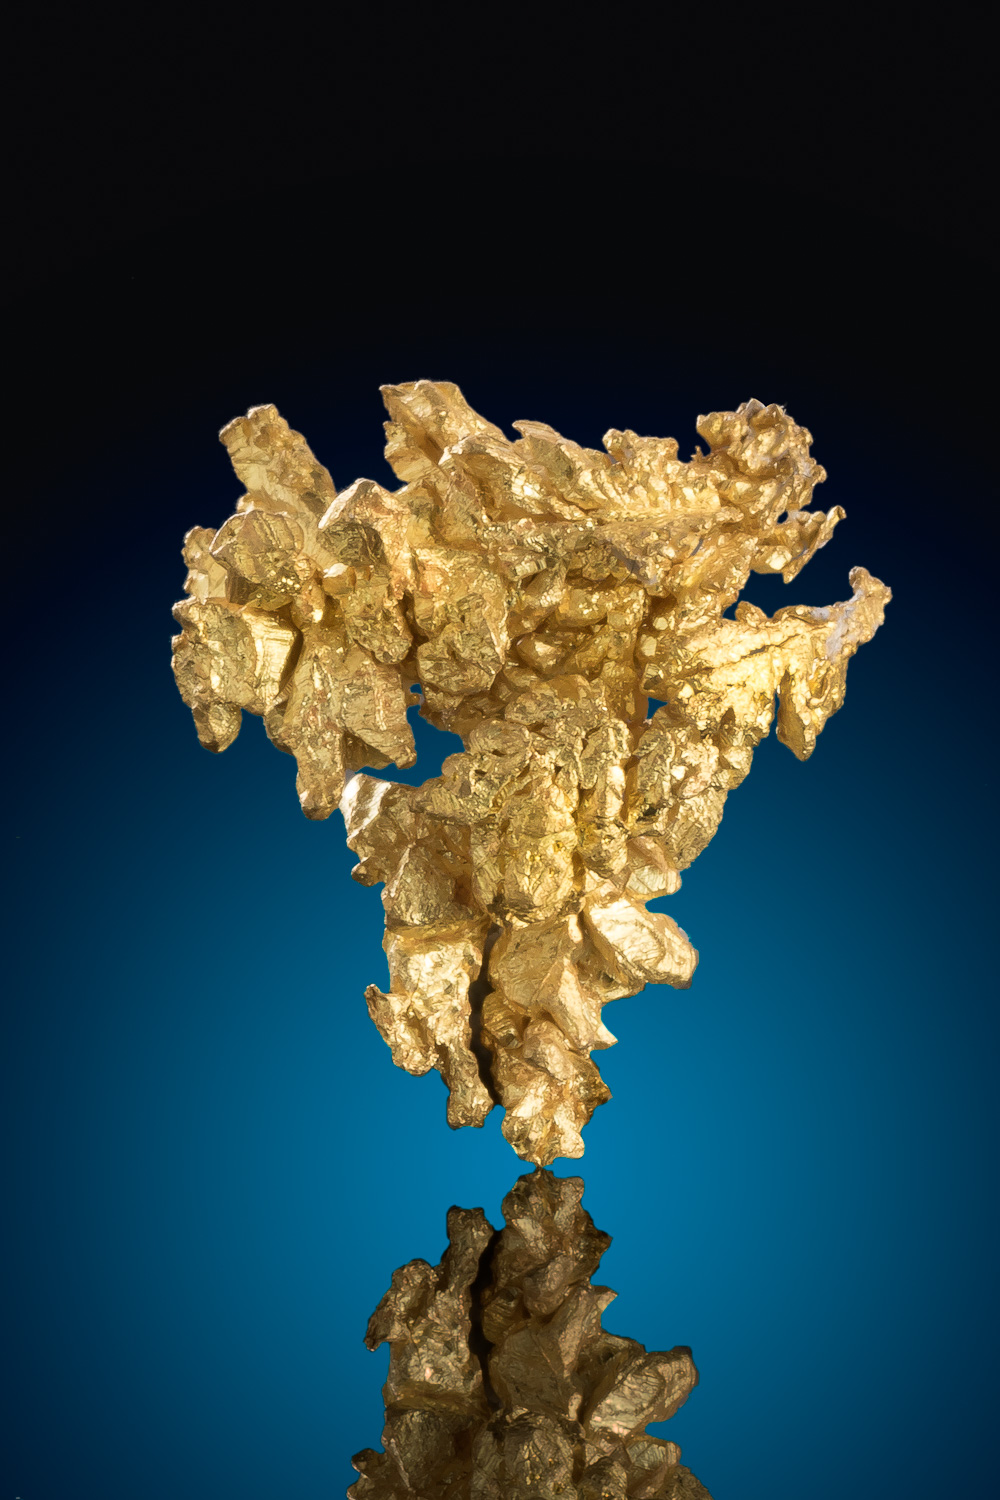 Chunky and Layered Gold Crystal - Diltz Gold Mine